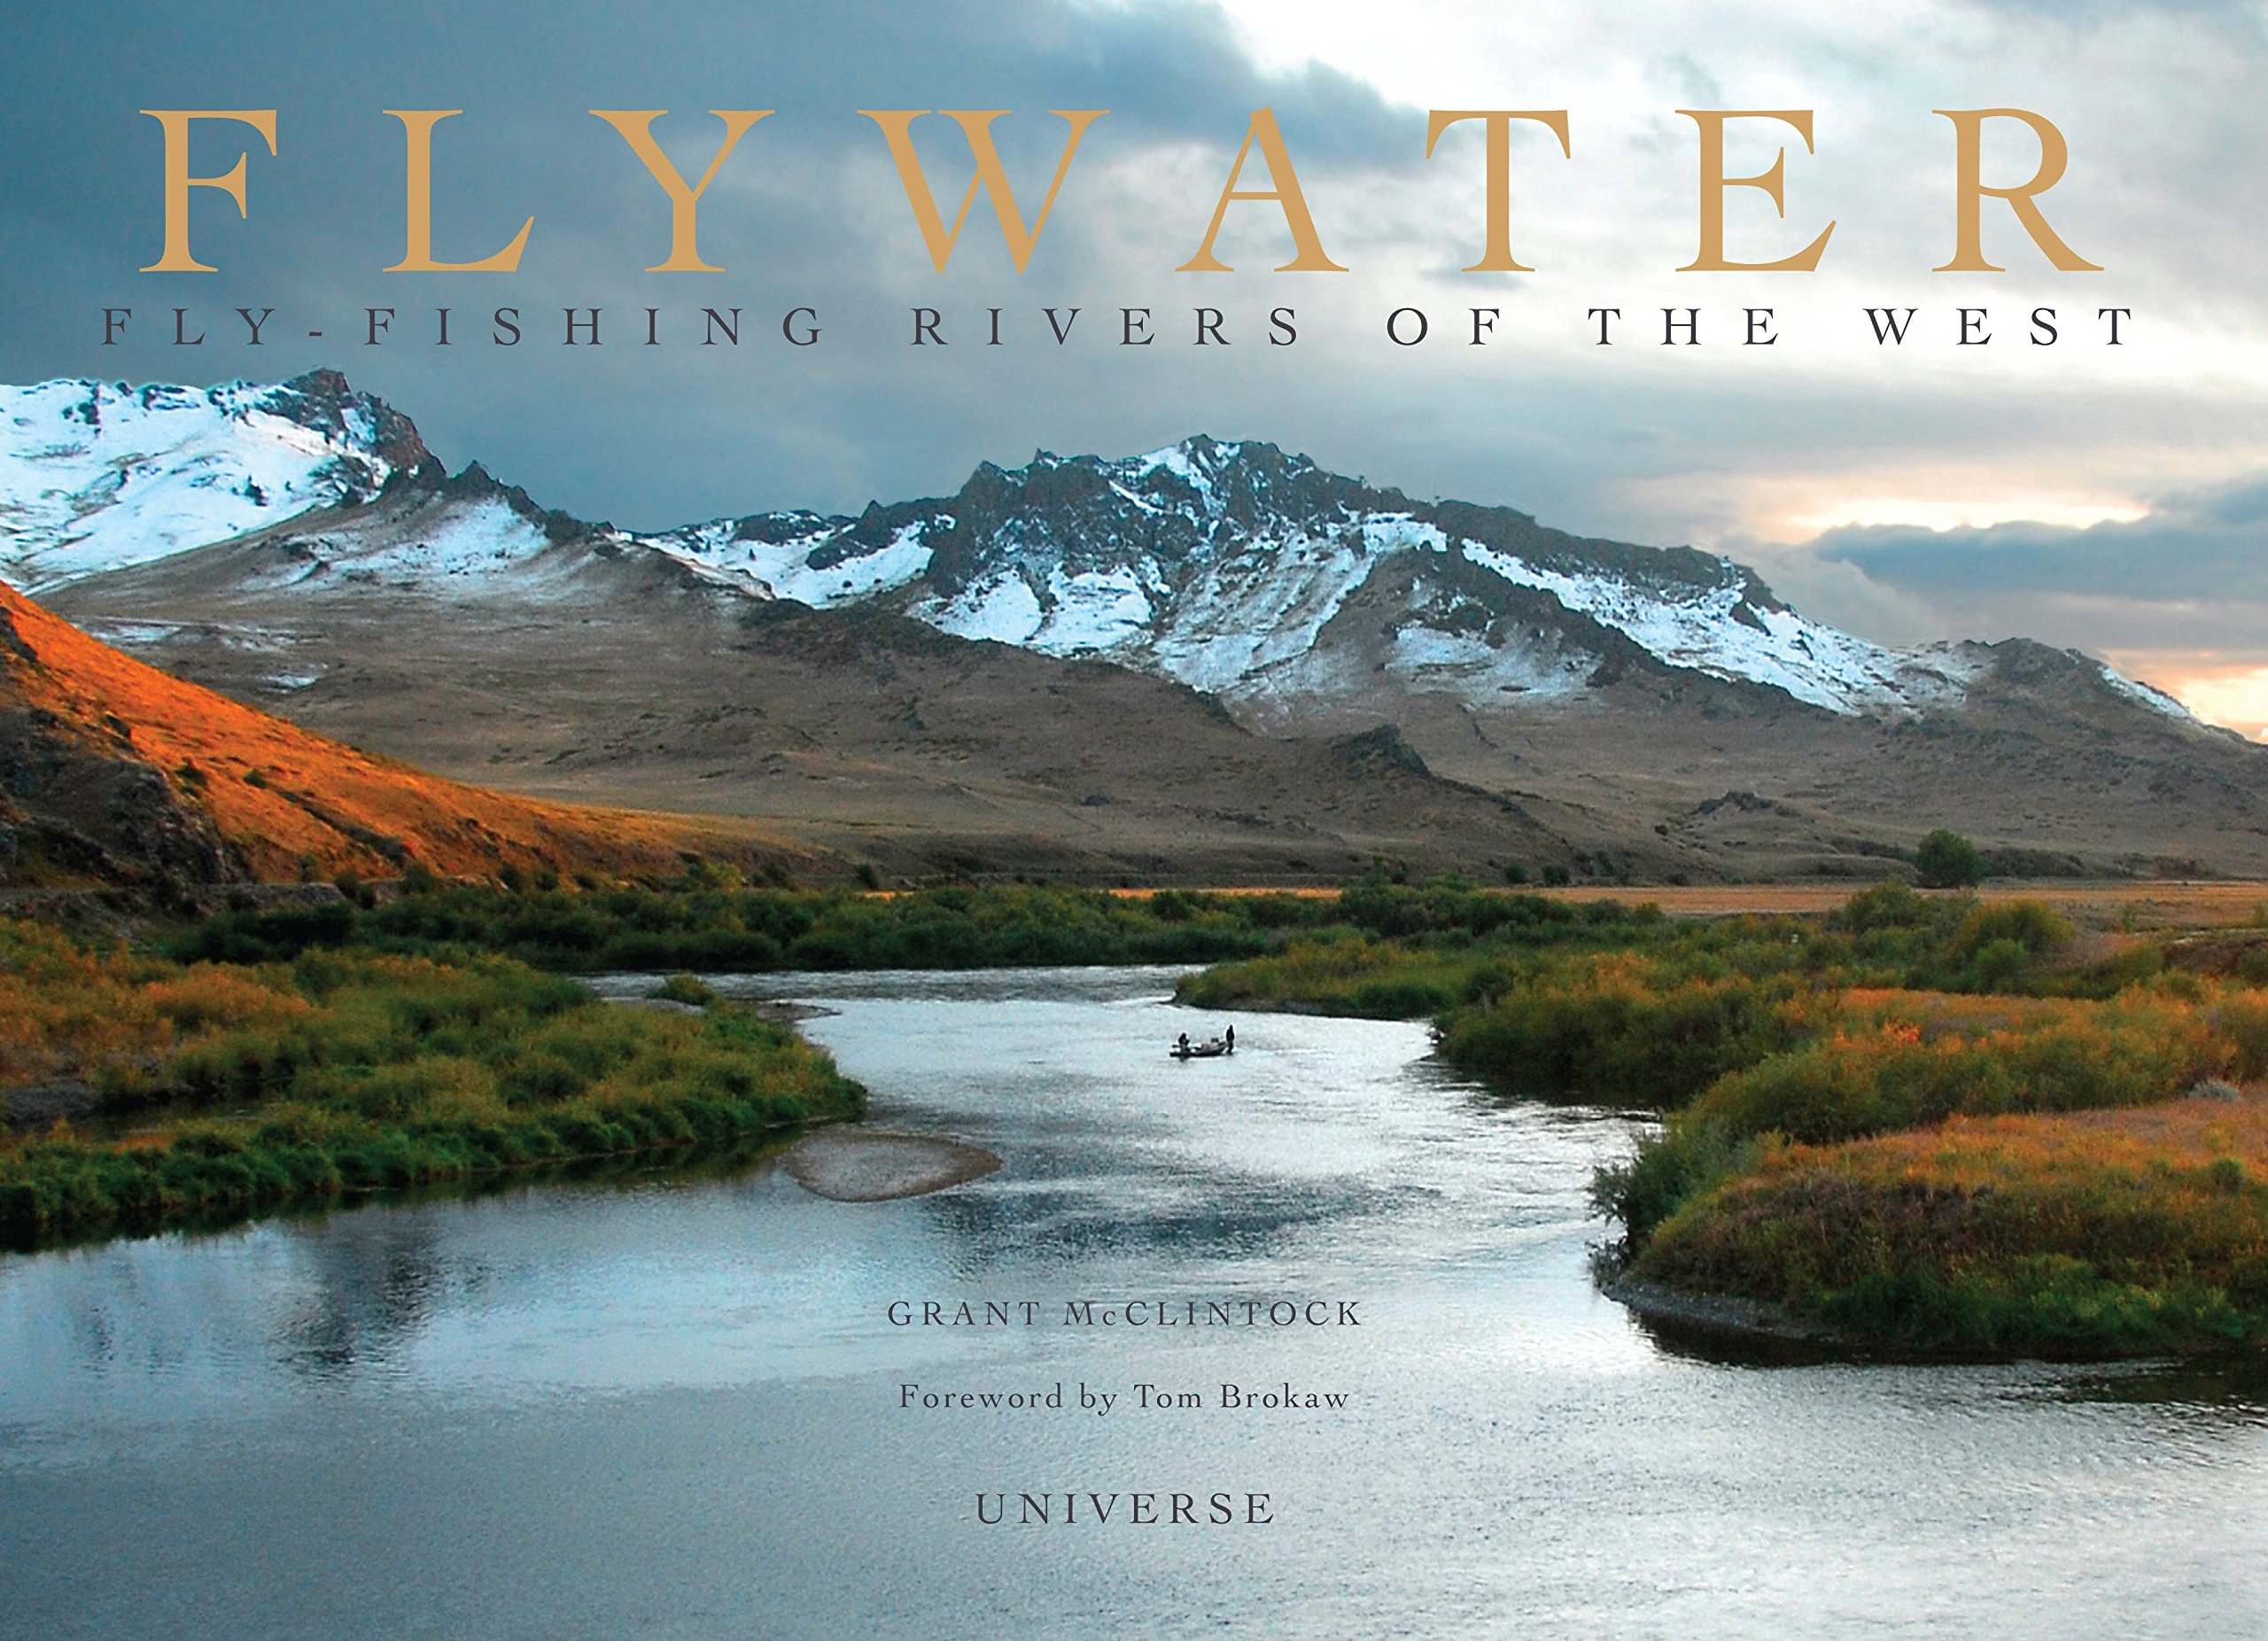 Flywater: Fly-Fishing Rivers of the West pdf